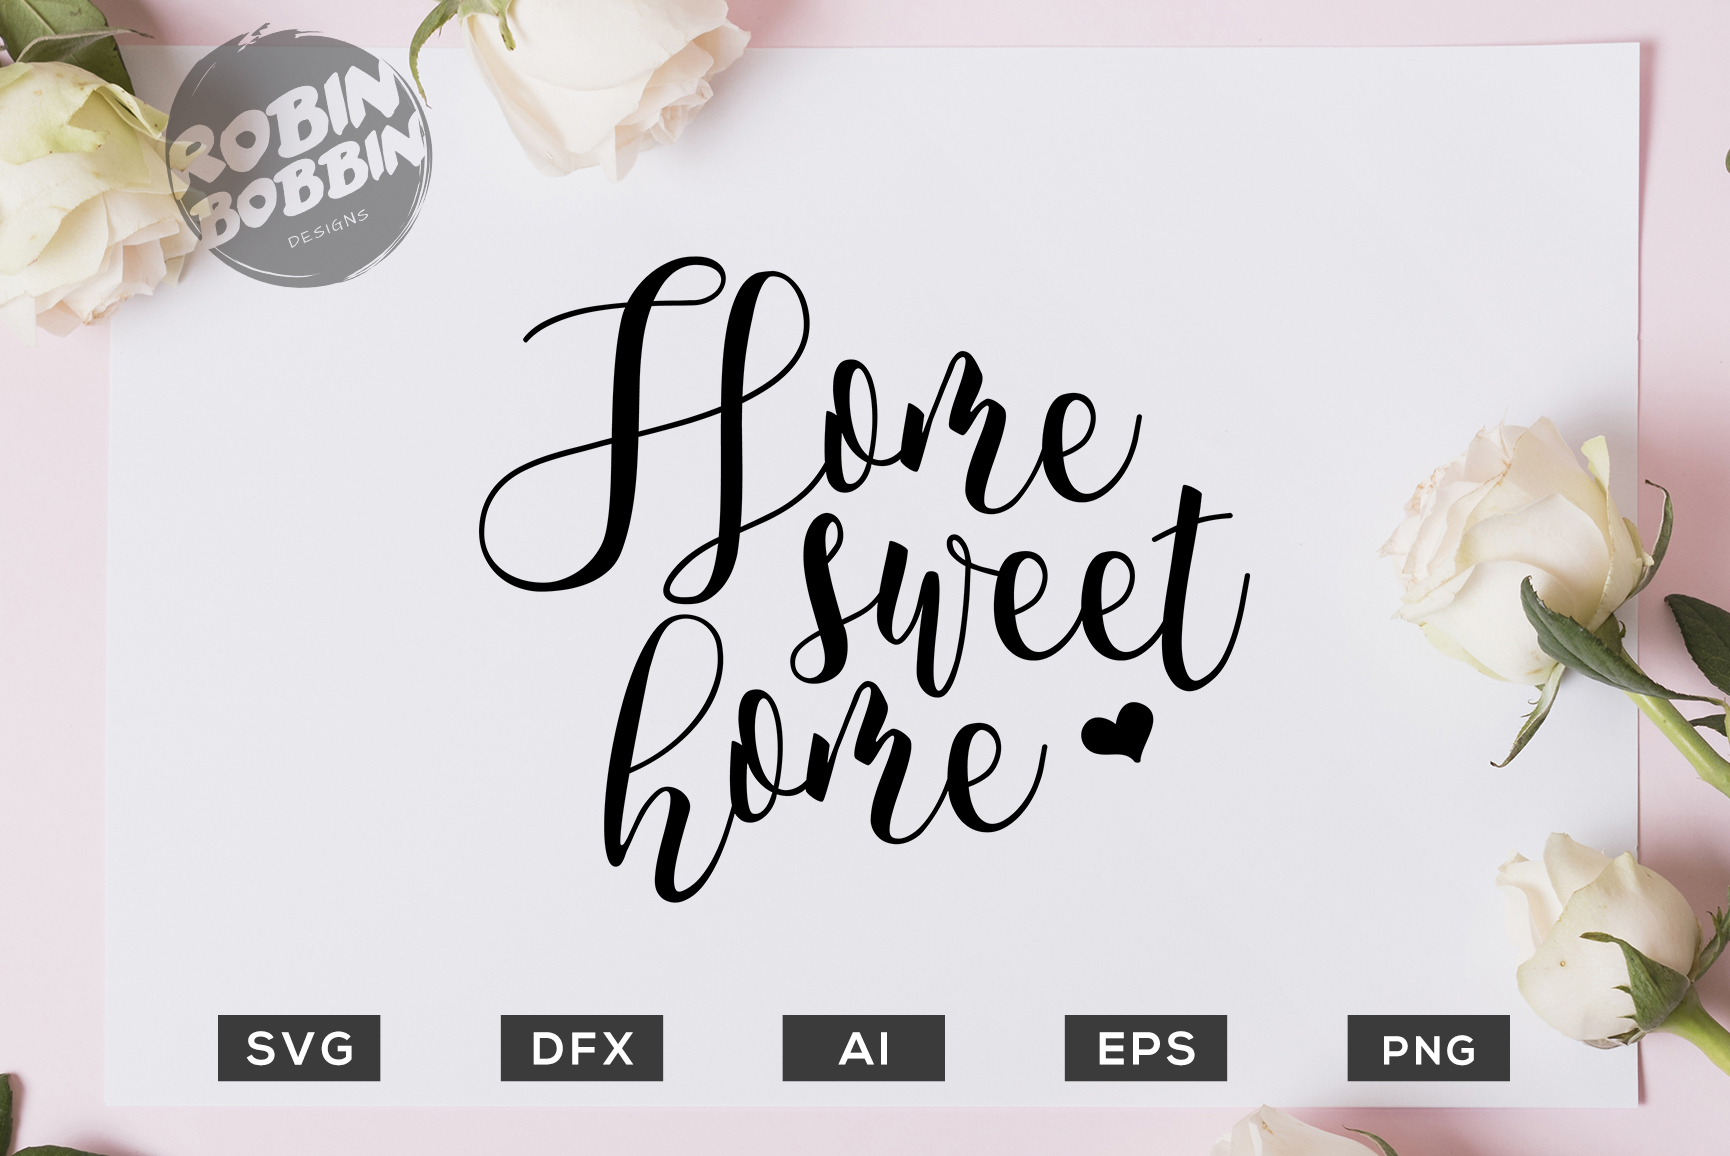 Download Free Home Sweet Home Graphic By Robinbobbindesign Creative Fabrica for Cricut Explore, Silhouette and other cutting machines.